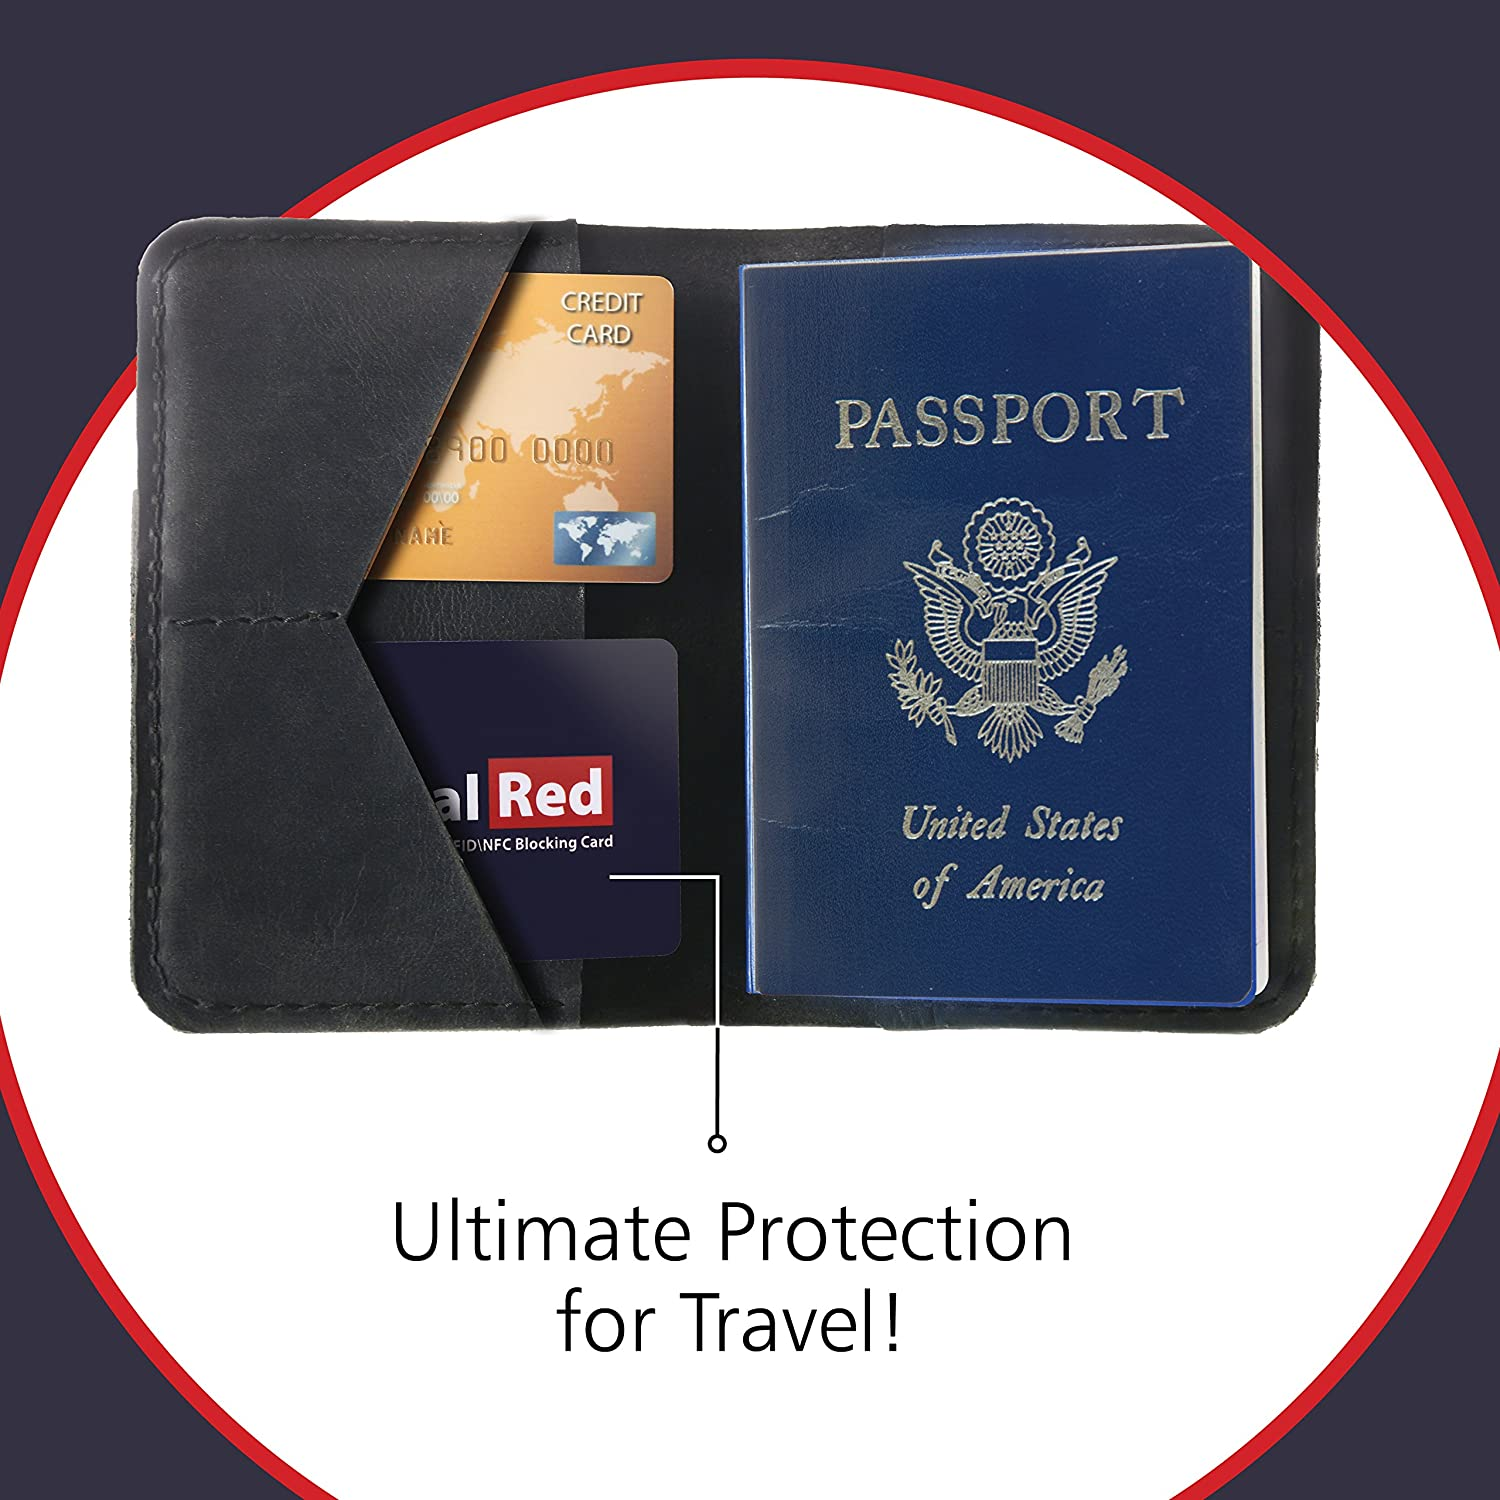 Amazon Credit Card Protector 1 RFID Blocking Card Does All to